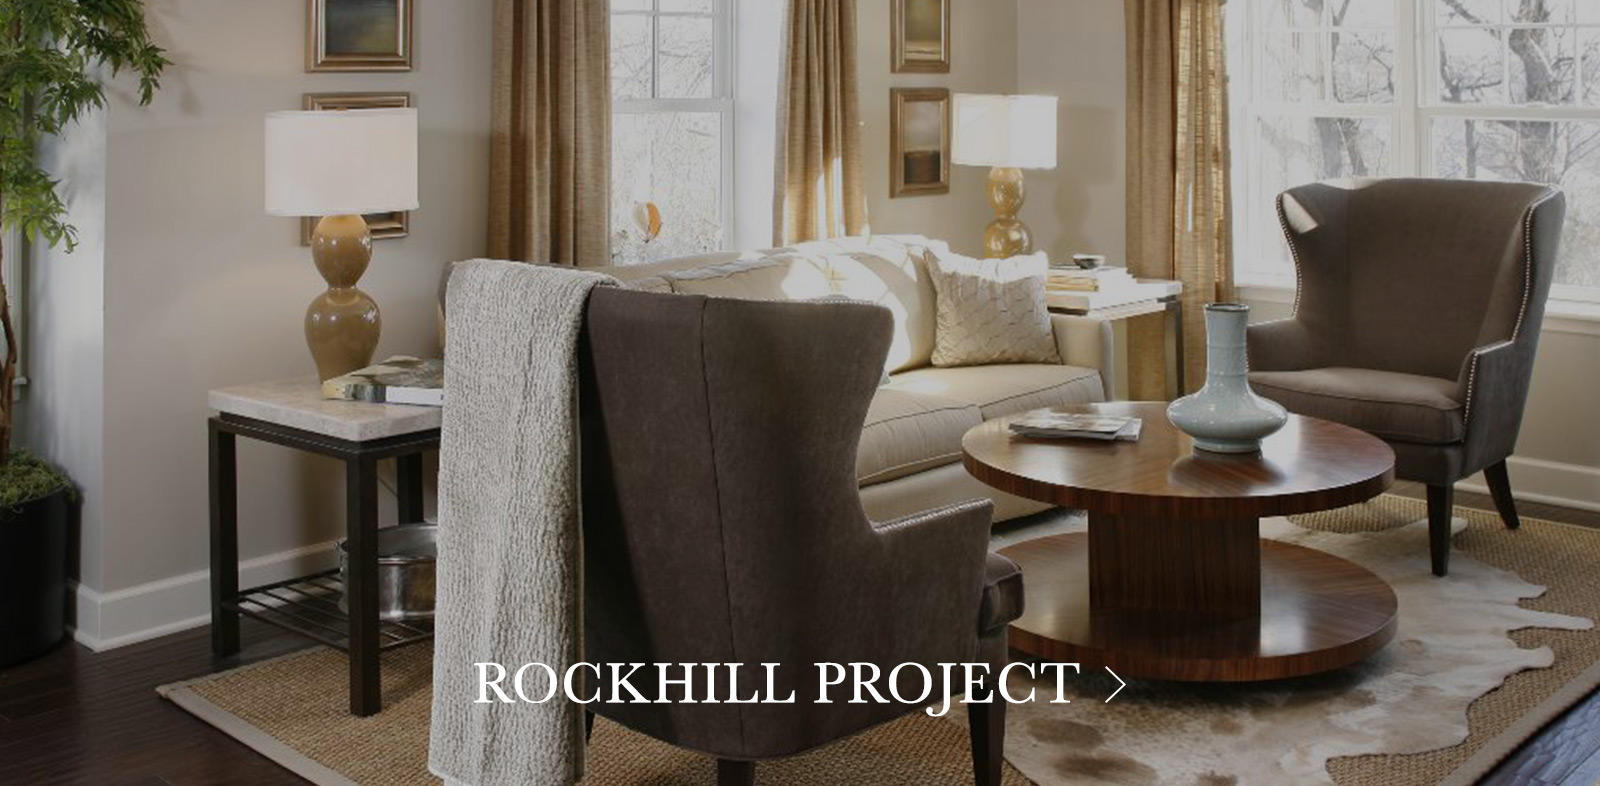 Rockhill-Project.jpg